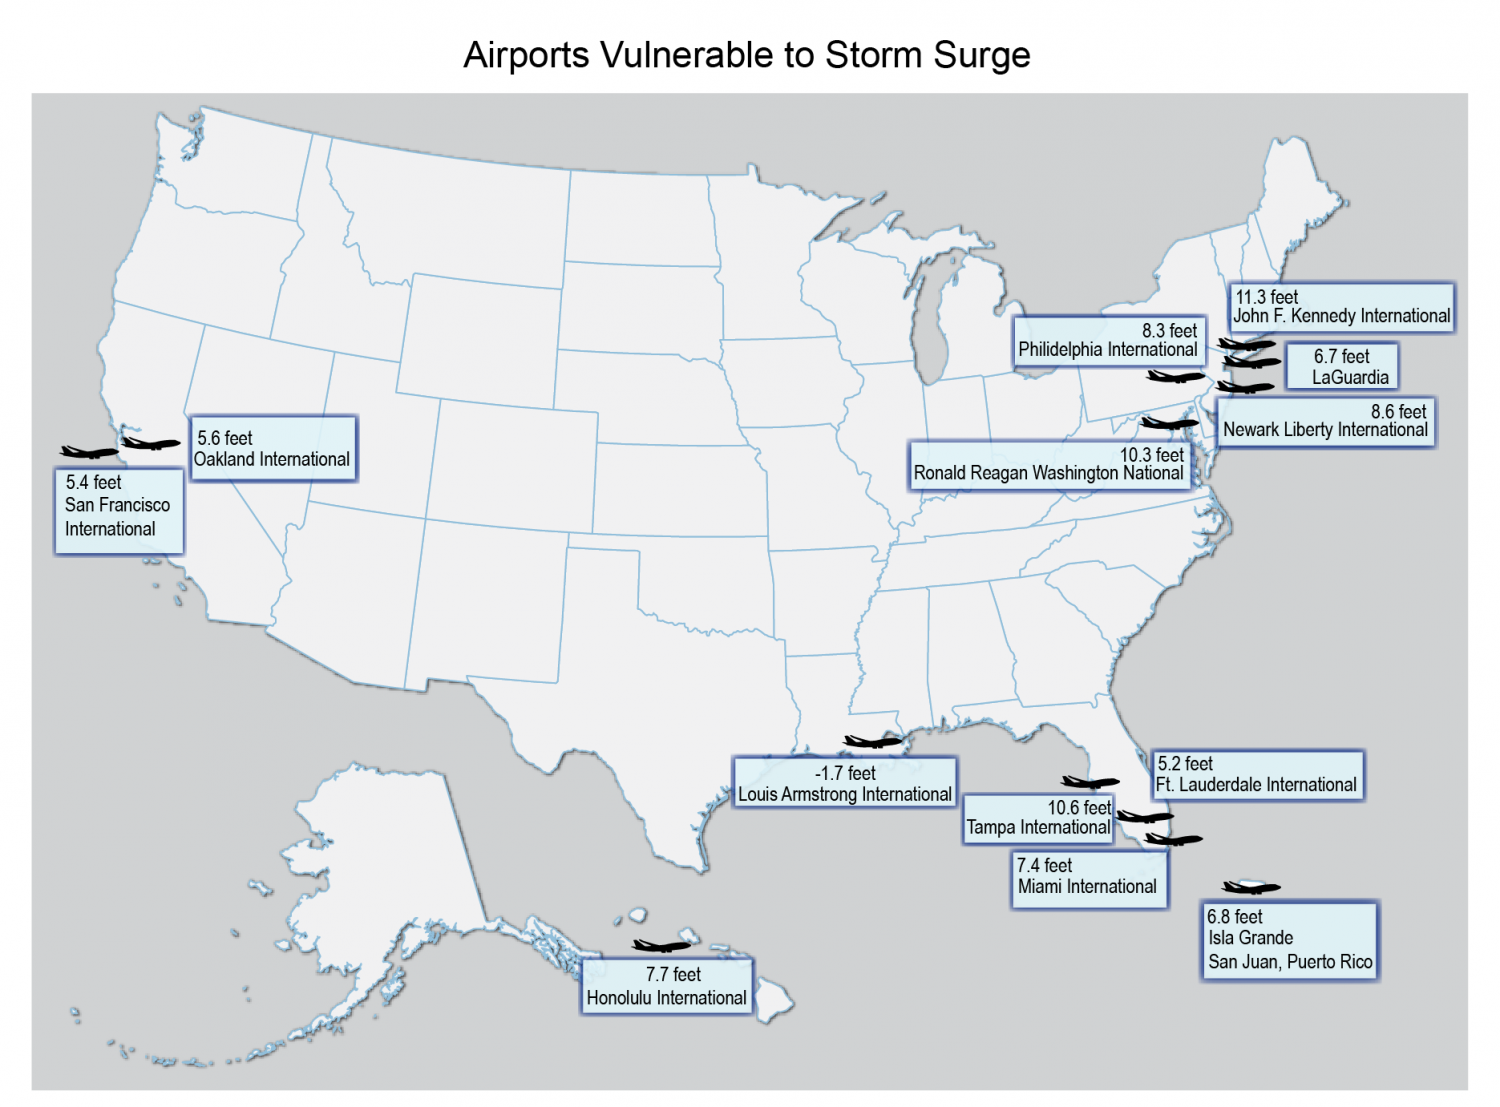 Airports Vulnerable to Storm Surge